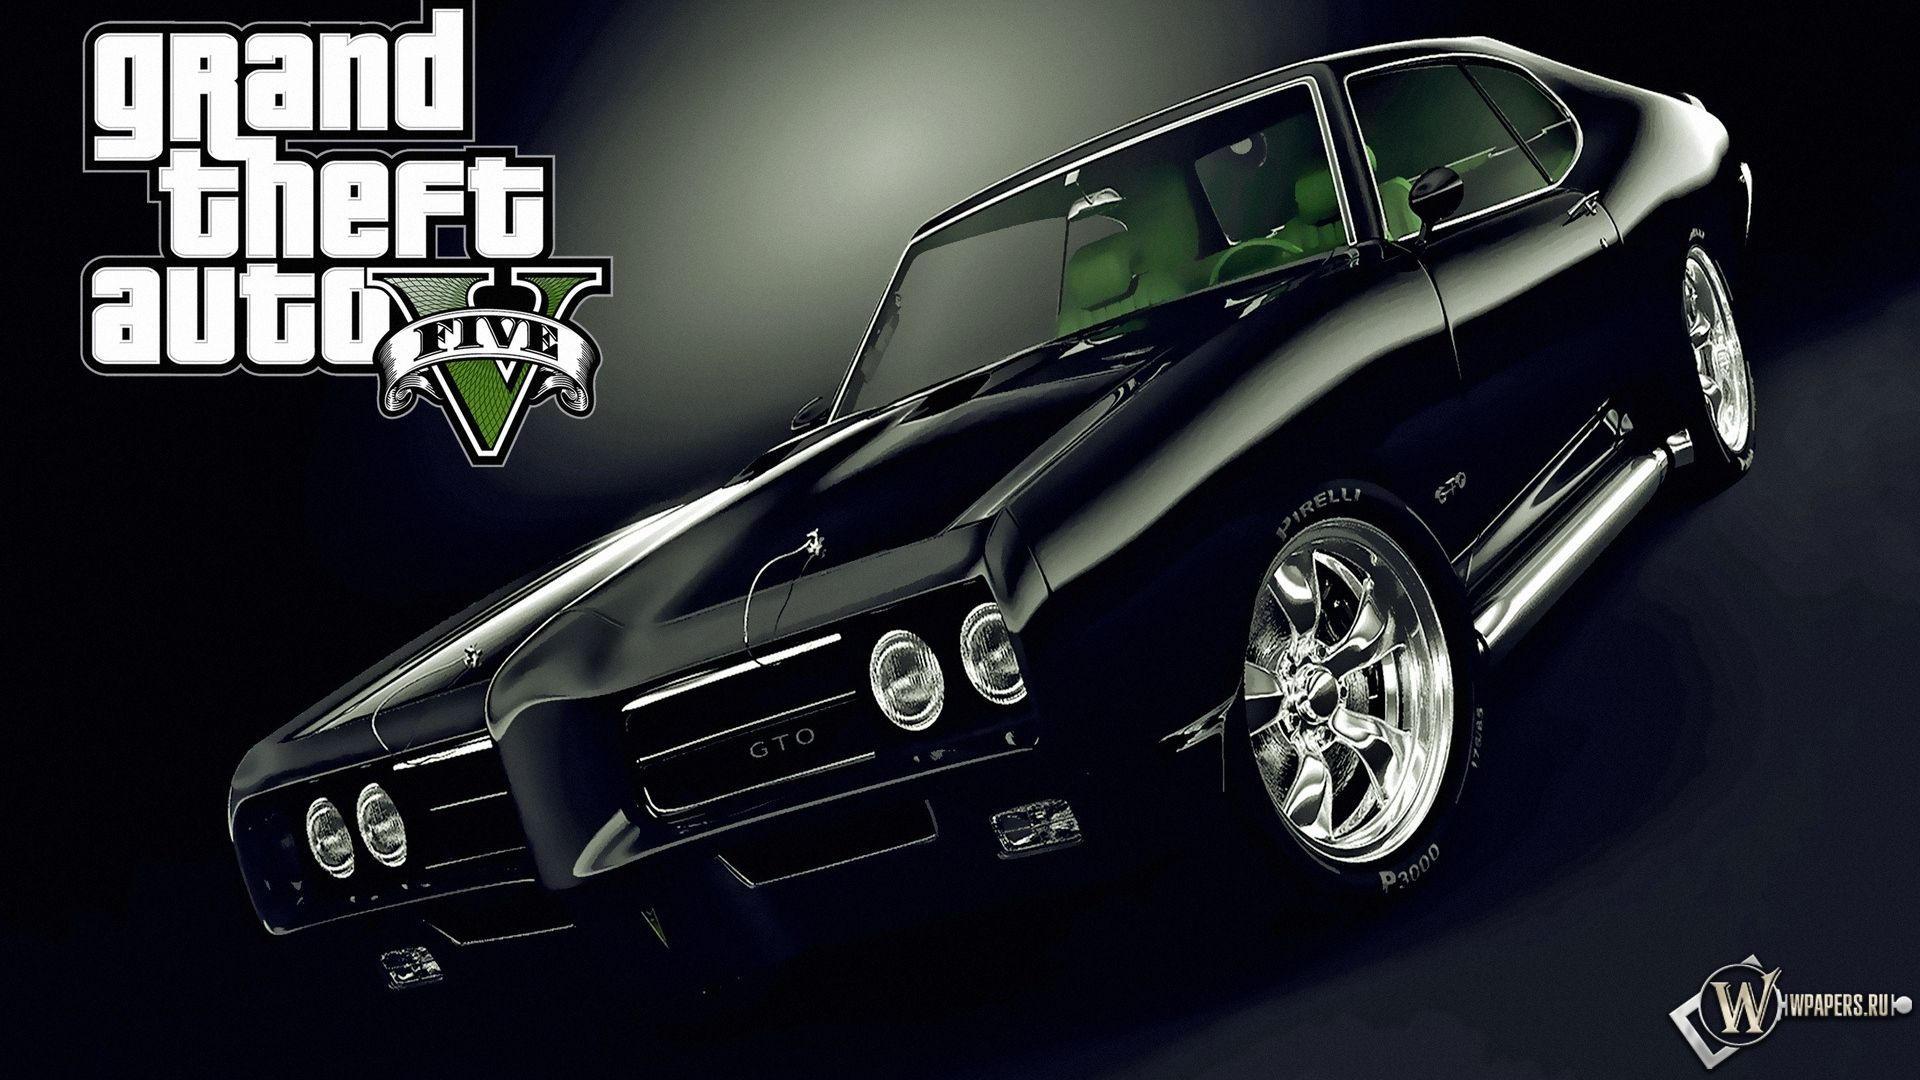 gta grand thef auto 5 wallpaper car wallpaper | gta 5 art